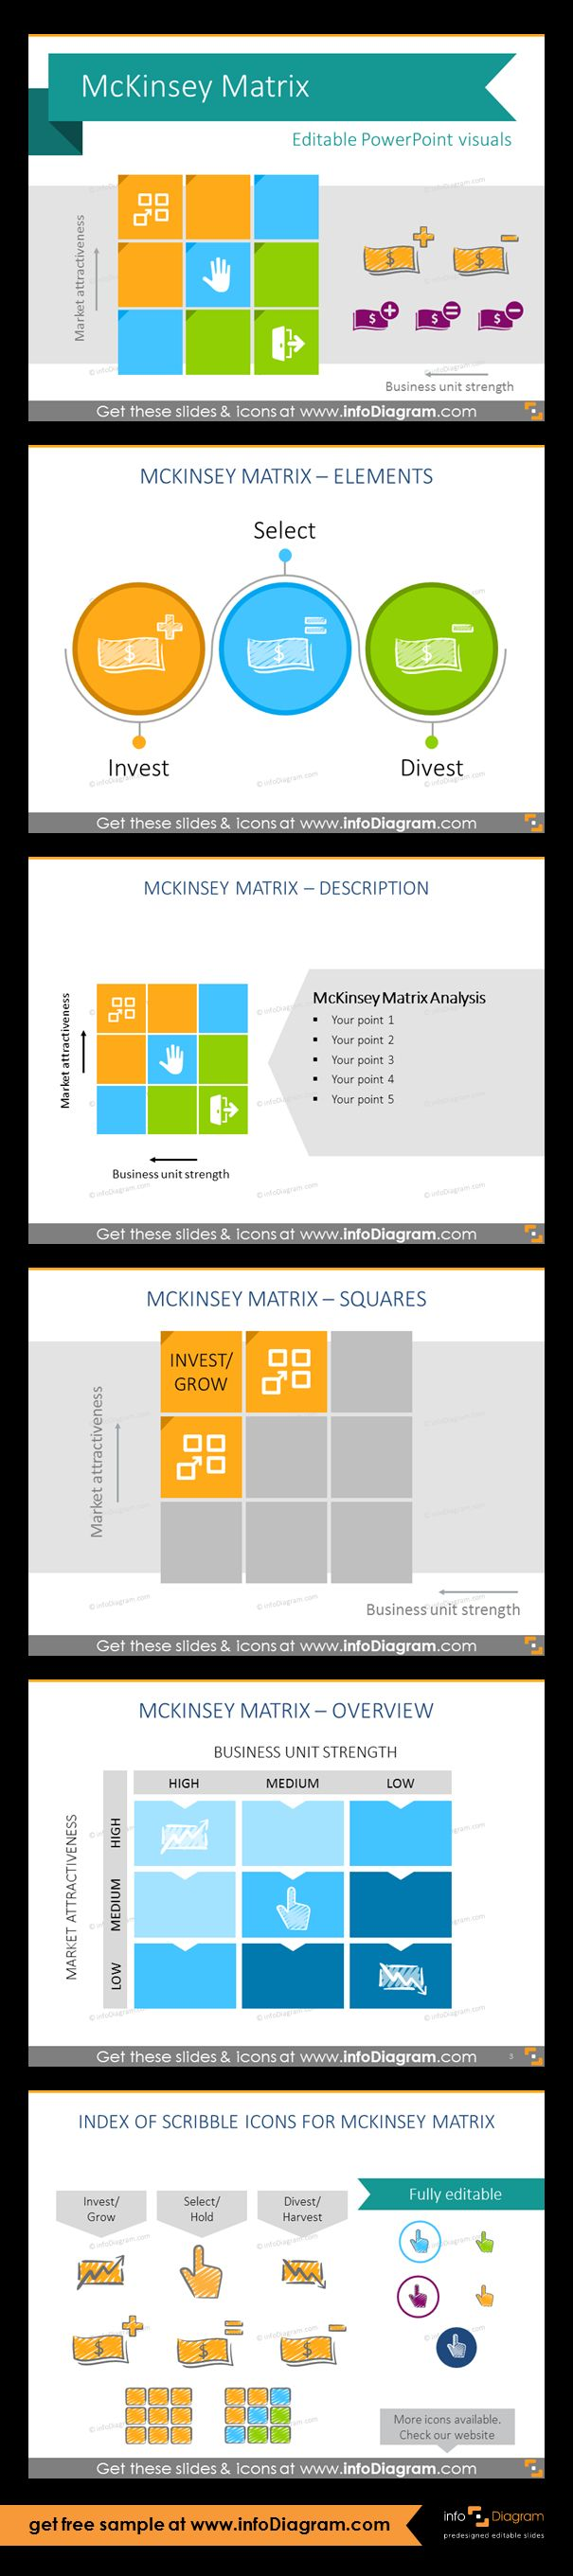 Collection of McKinsey matrix (so called GE Matrix) visual layouts as pre-designed PowerPoint slides. Use this presentation to educate about investment strategies. Fully editable style. Size and colors easy to adjust using PowerPoint editor. Examples of presenting McKinsey Matrix: illustrated with scribbled icons in circles, with description aside, foe separate elements, monocolor matrix, scribbled creative pictograms.